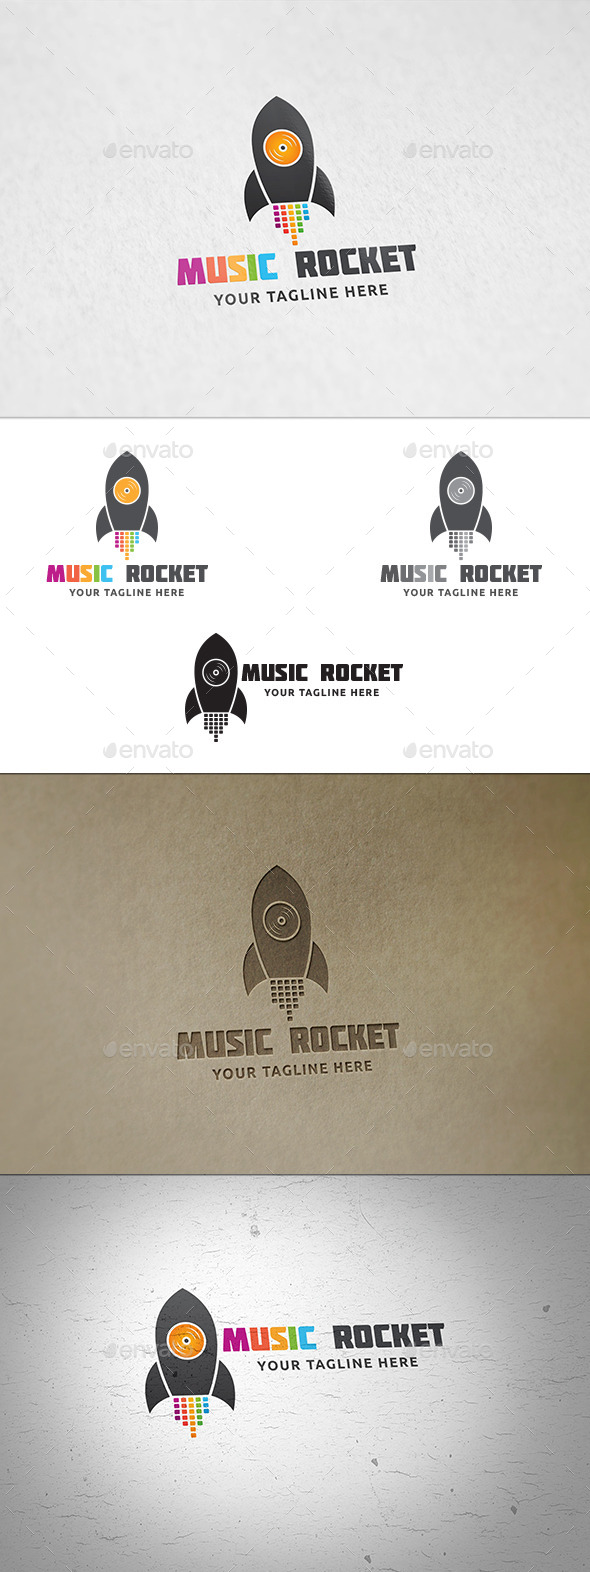 Music Rocket Logo - Symbols Logo Templates